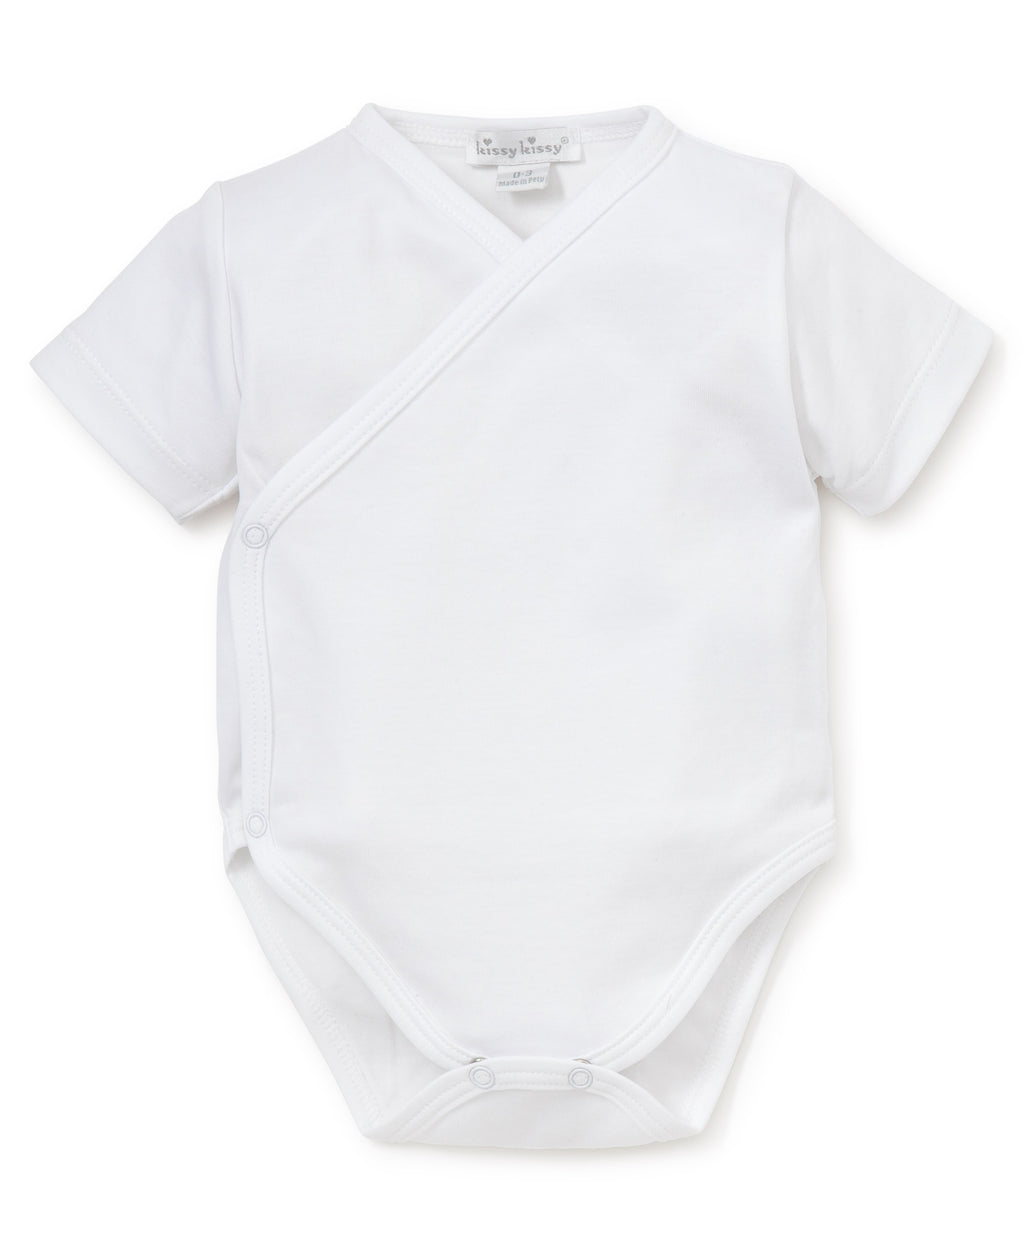 White Kissy Basics Short Sleeve Cross Bodysuit